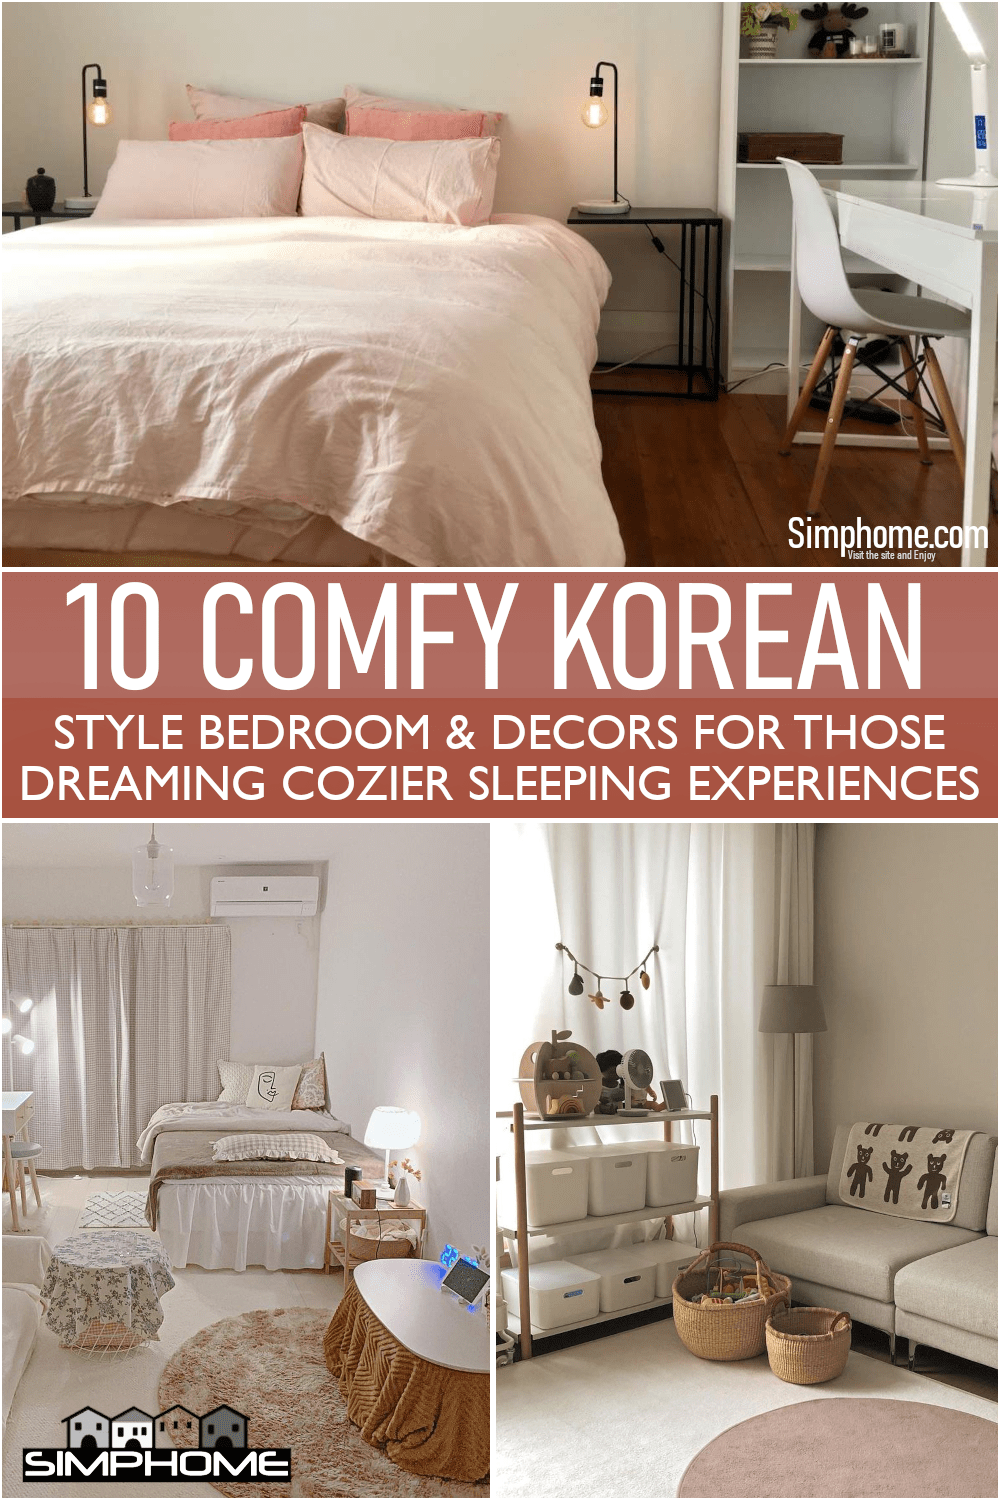 This is awesome 10 Comfortable Korean Style Bedroom